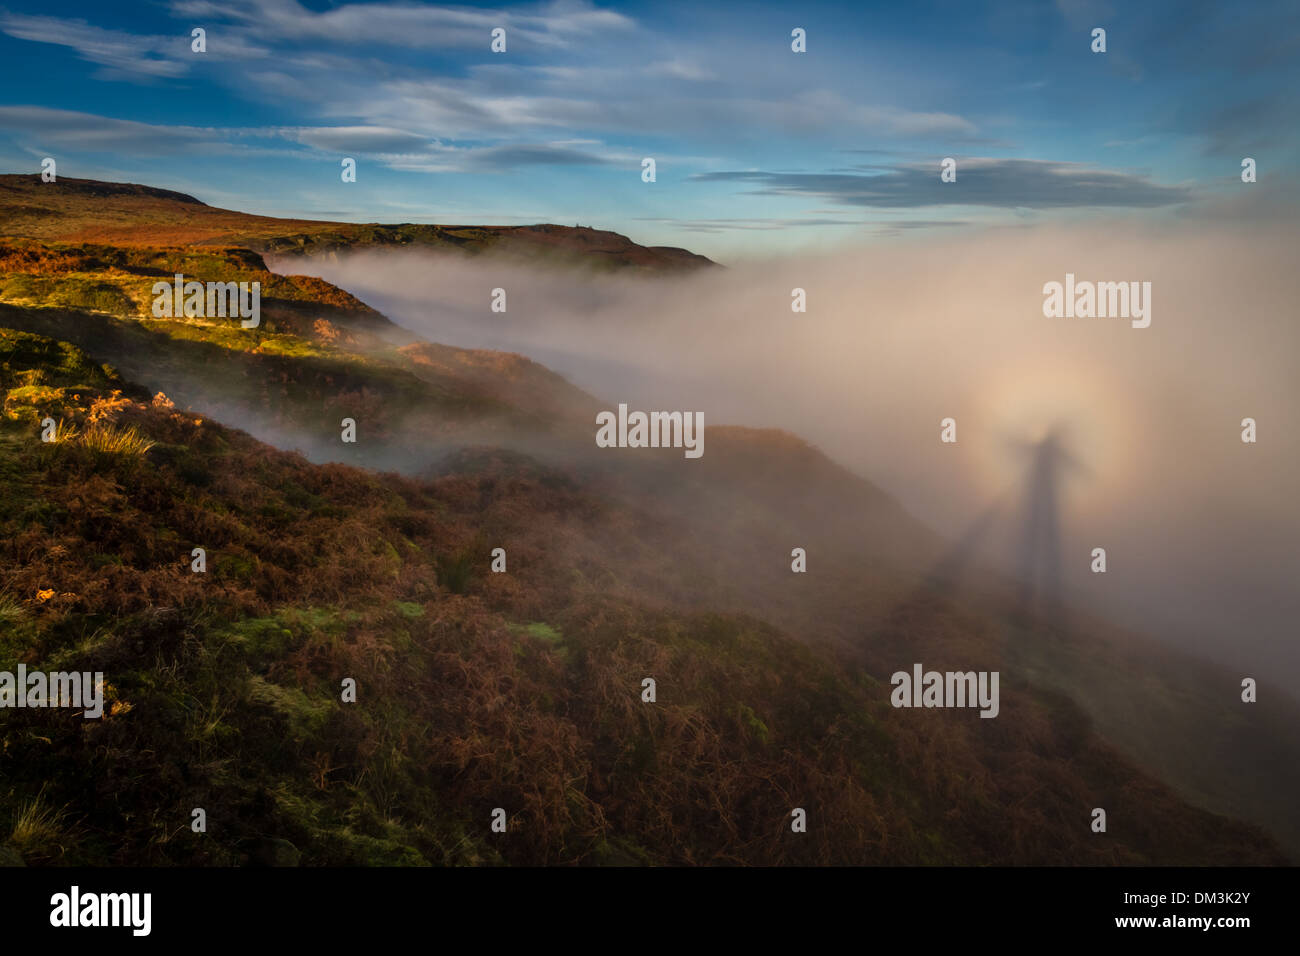 Dramatic brocken spectre of a person and dog on rural Ilkley Moor, Yorkshire, Wharfedale  UK - Stock Image